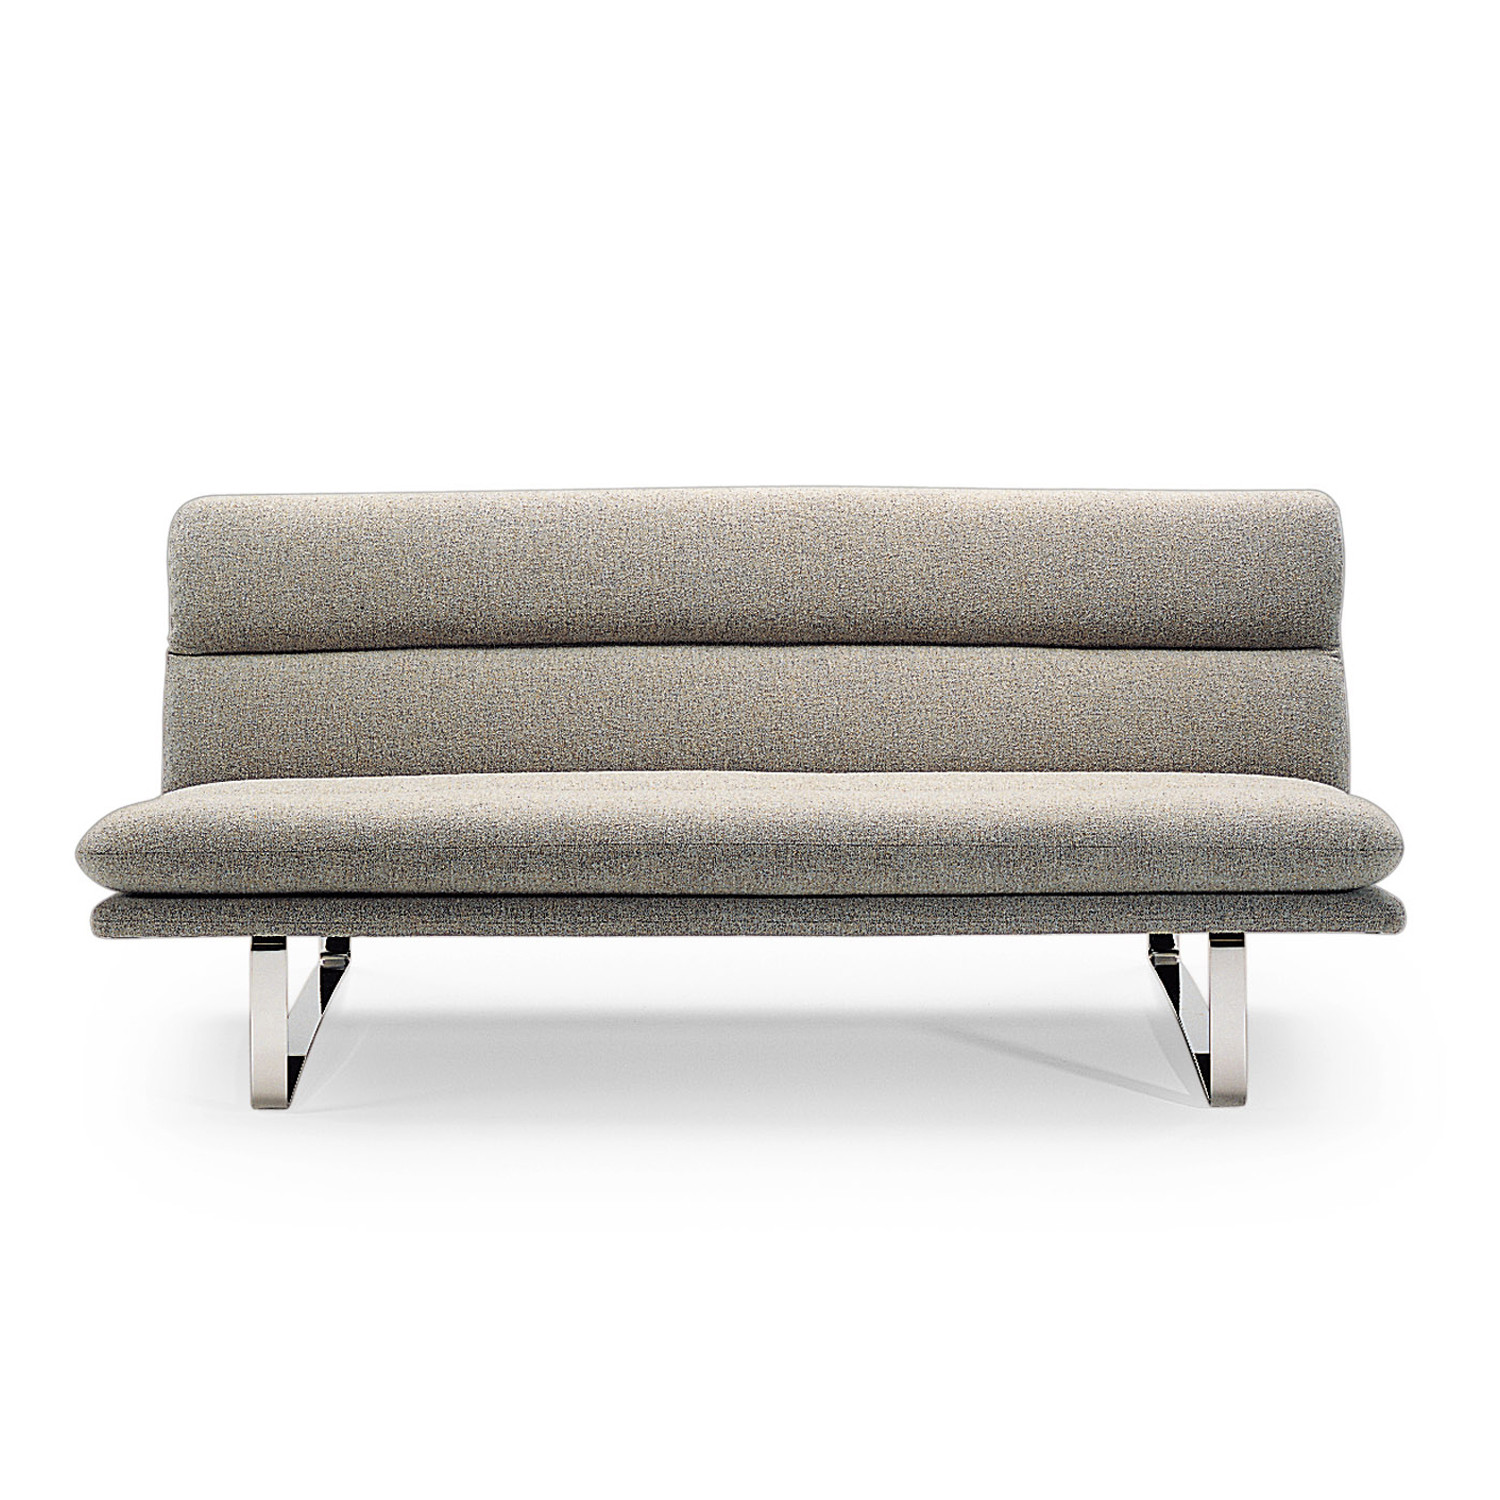 C 684 Sofa by Artifort